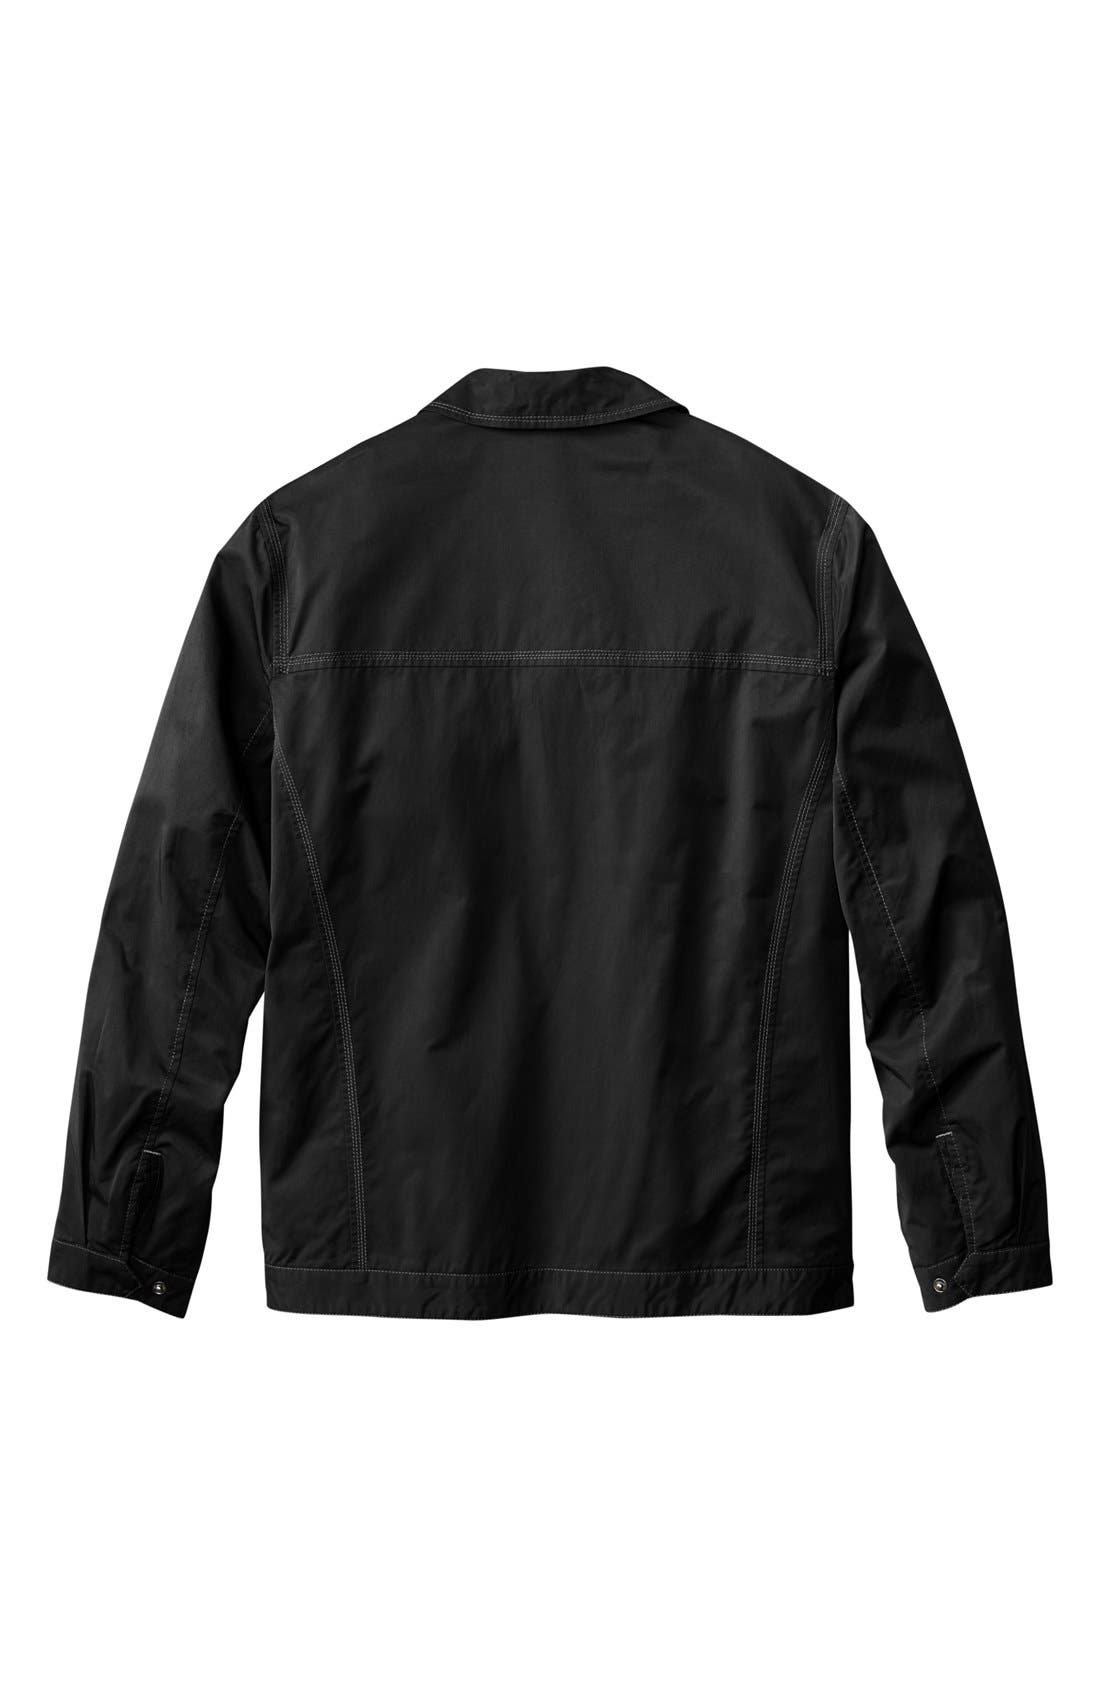 'Cannes Cruiser' Jacket,                             Alternate thumbnail 7, color,